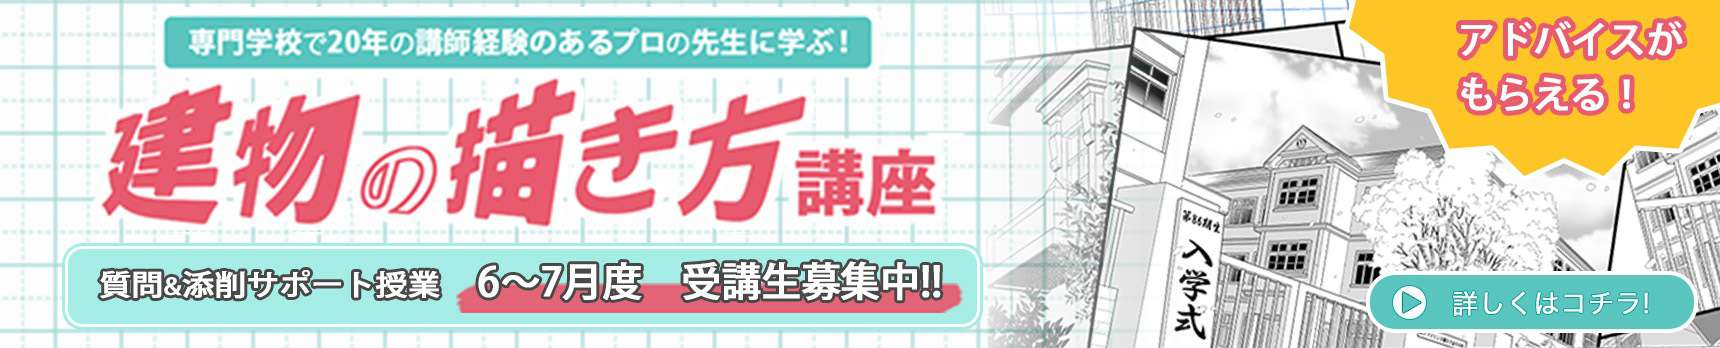 Sina support rec banner pc